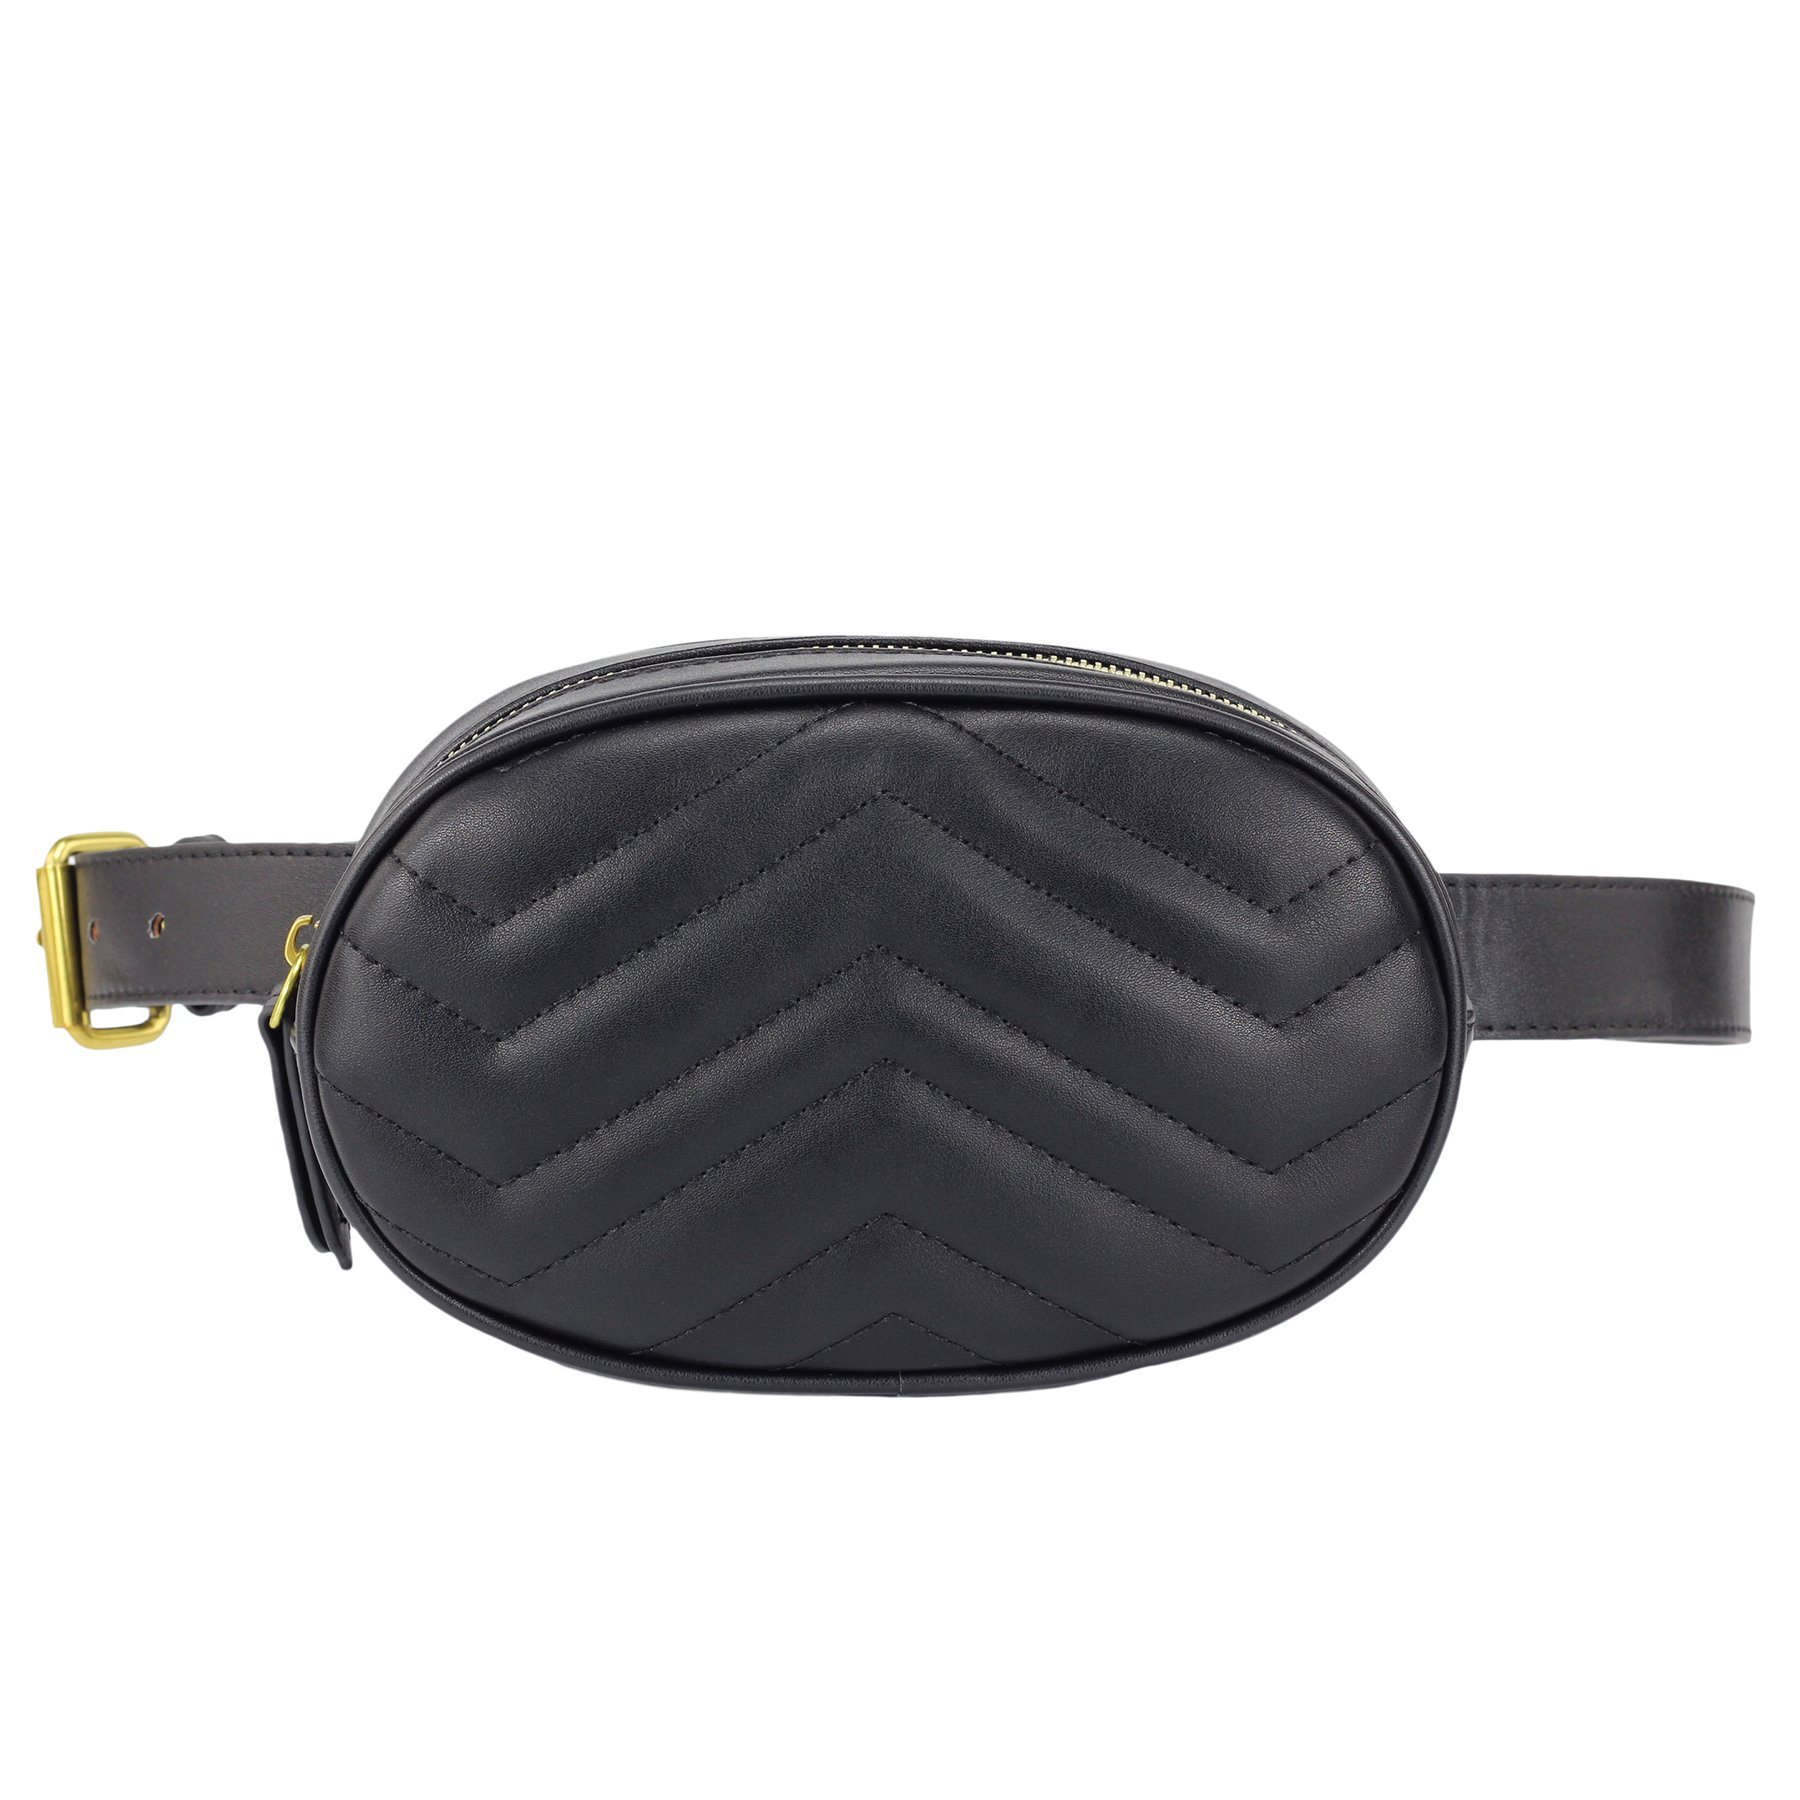 ZORFIN Quilted Fanny Pack for Women Fashion Wasit Bag with Two Belts